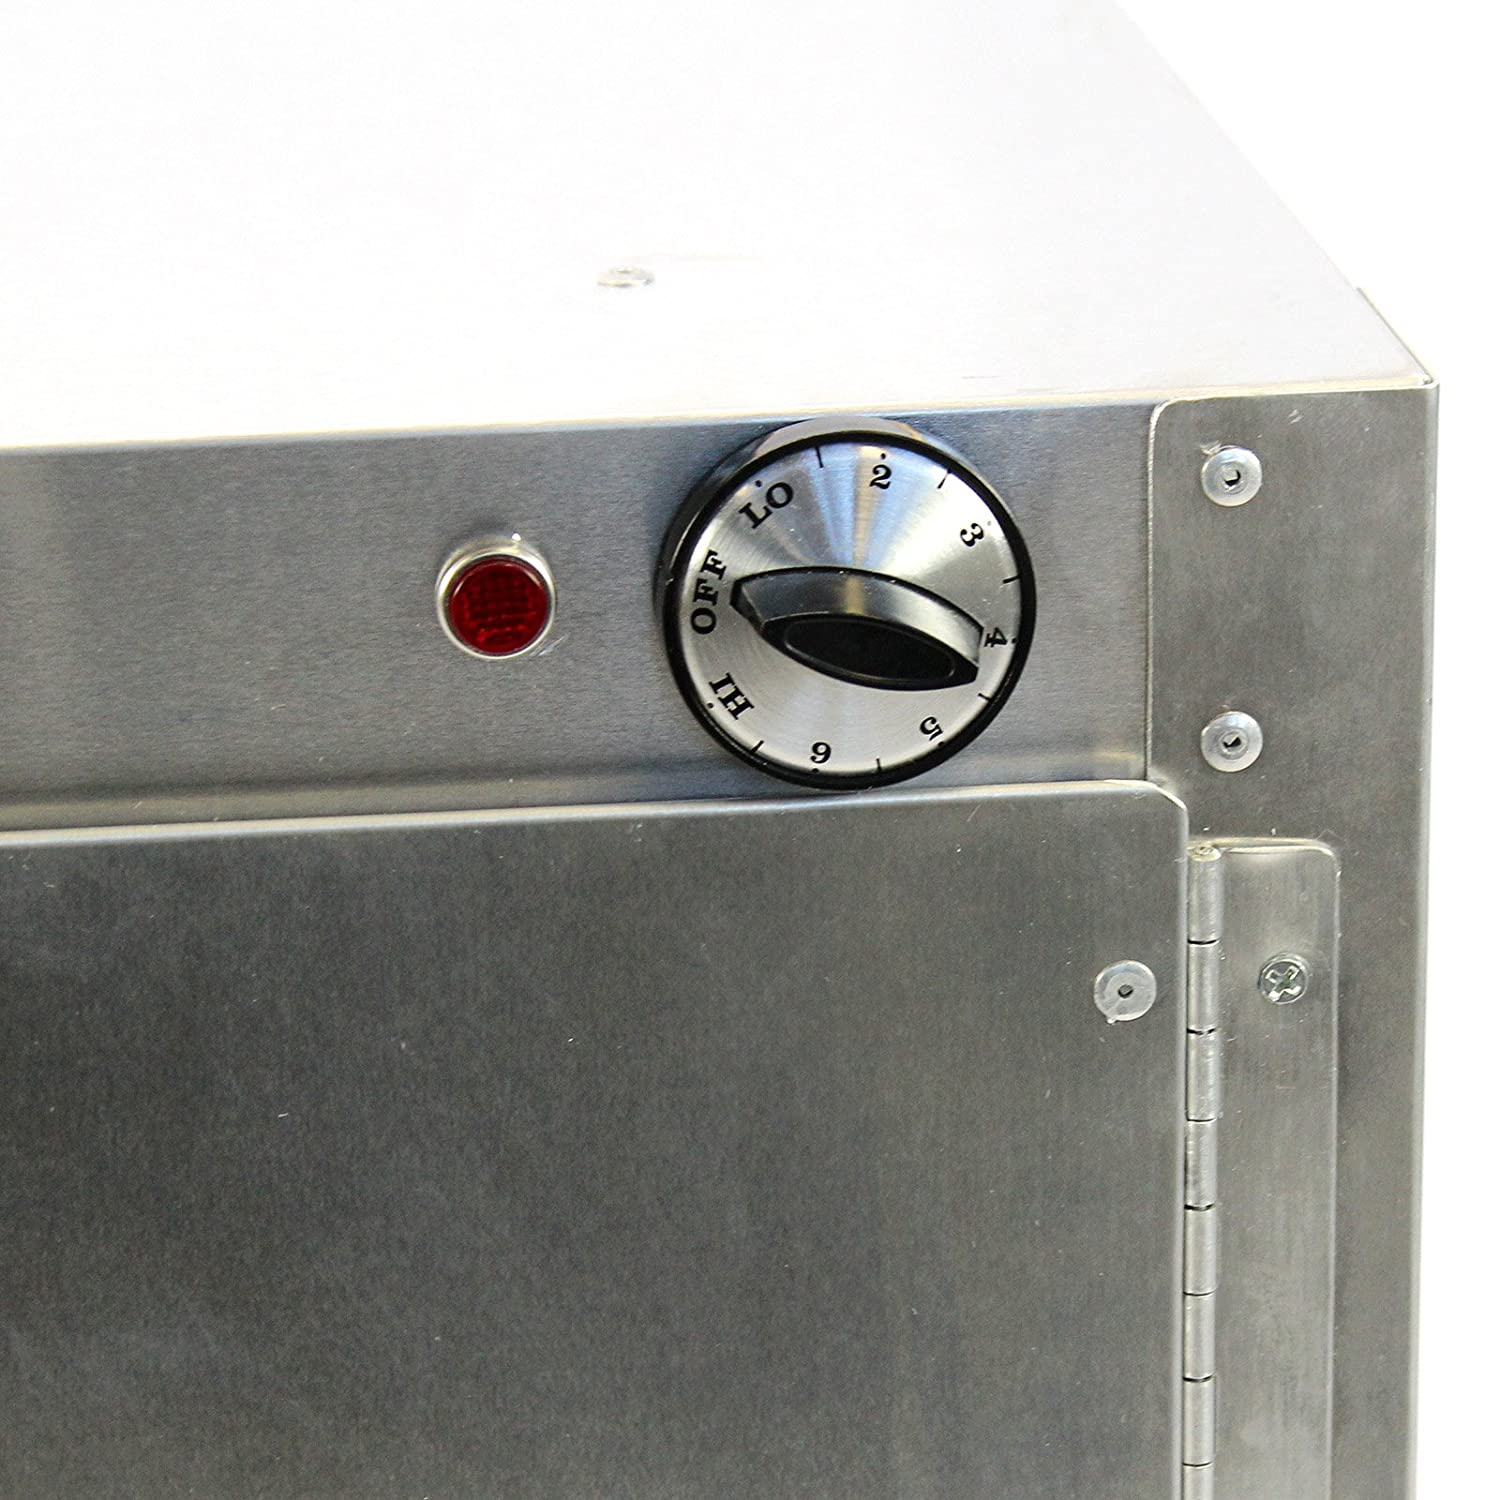 mercial 110v catering hot box proofer food warmer w